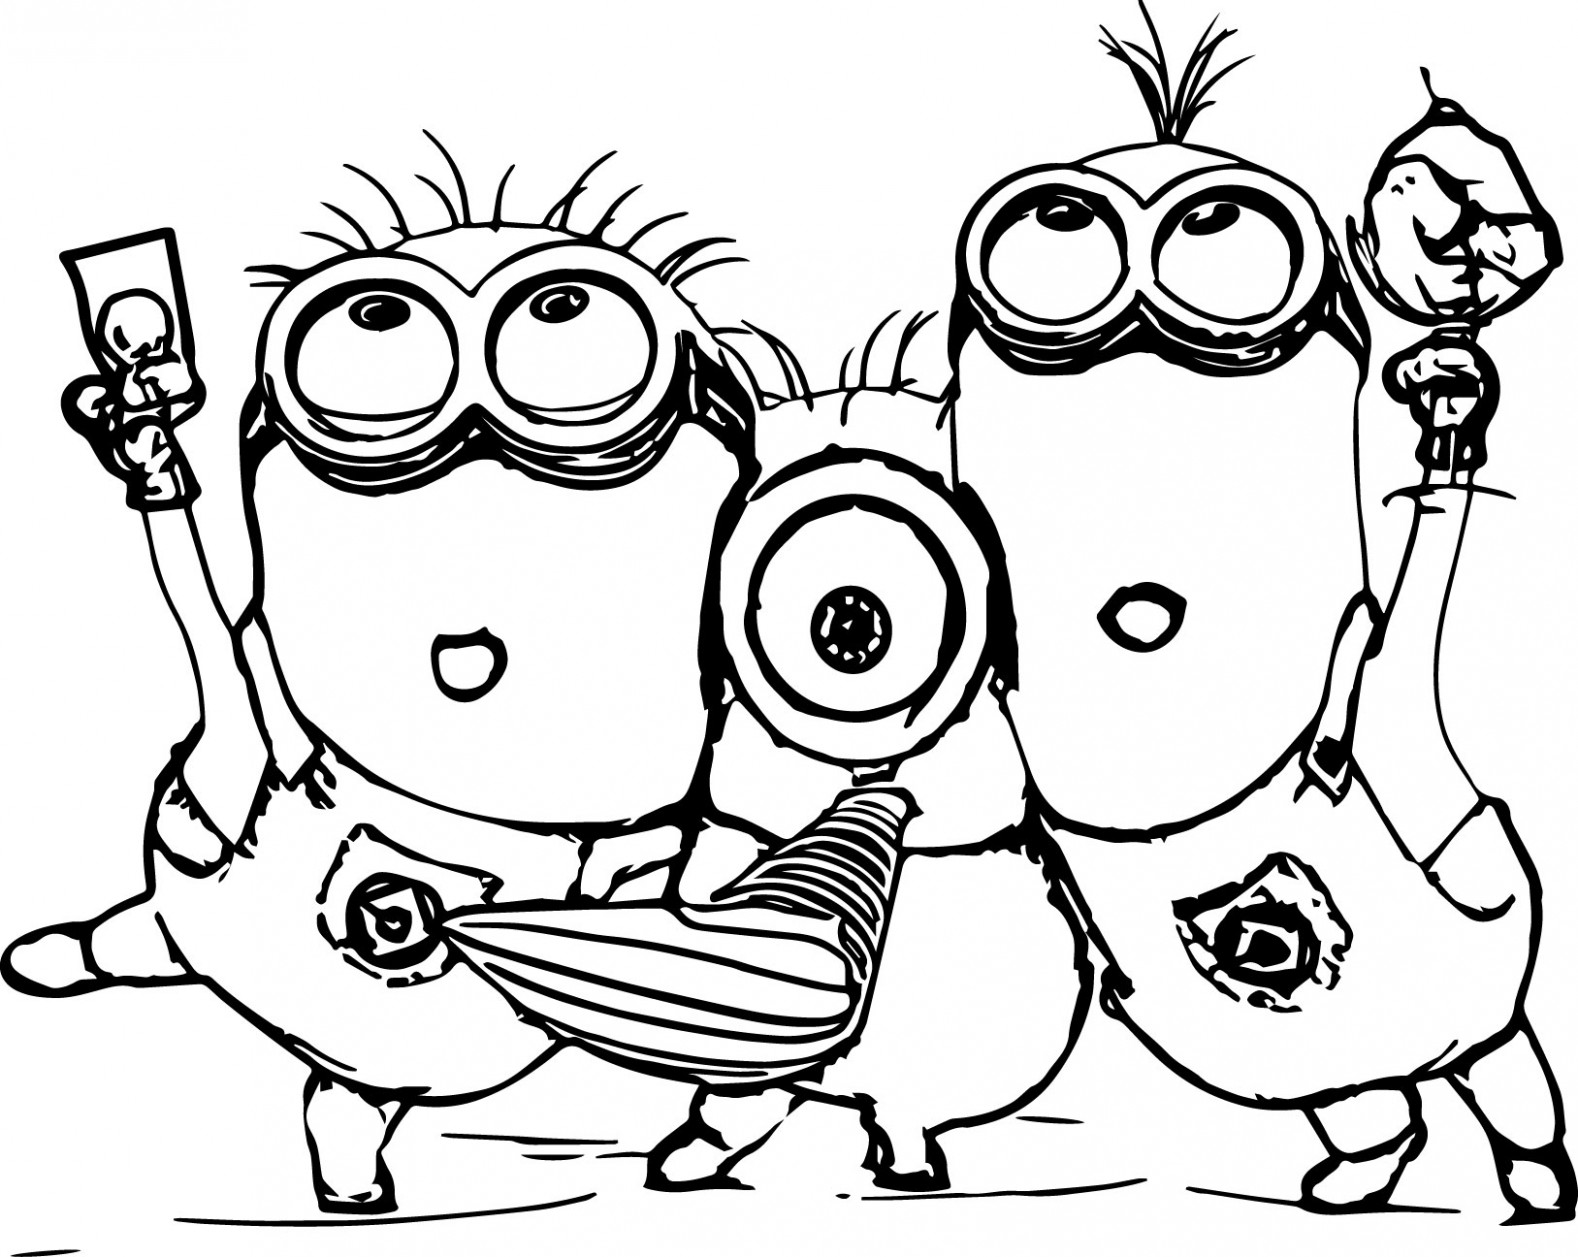 Minion Coloring Pages – Dr